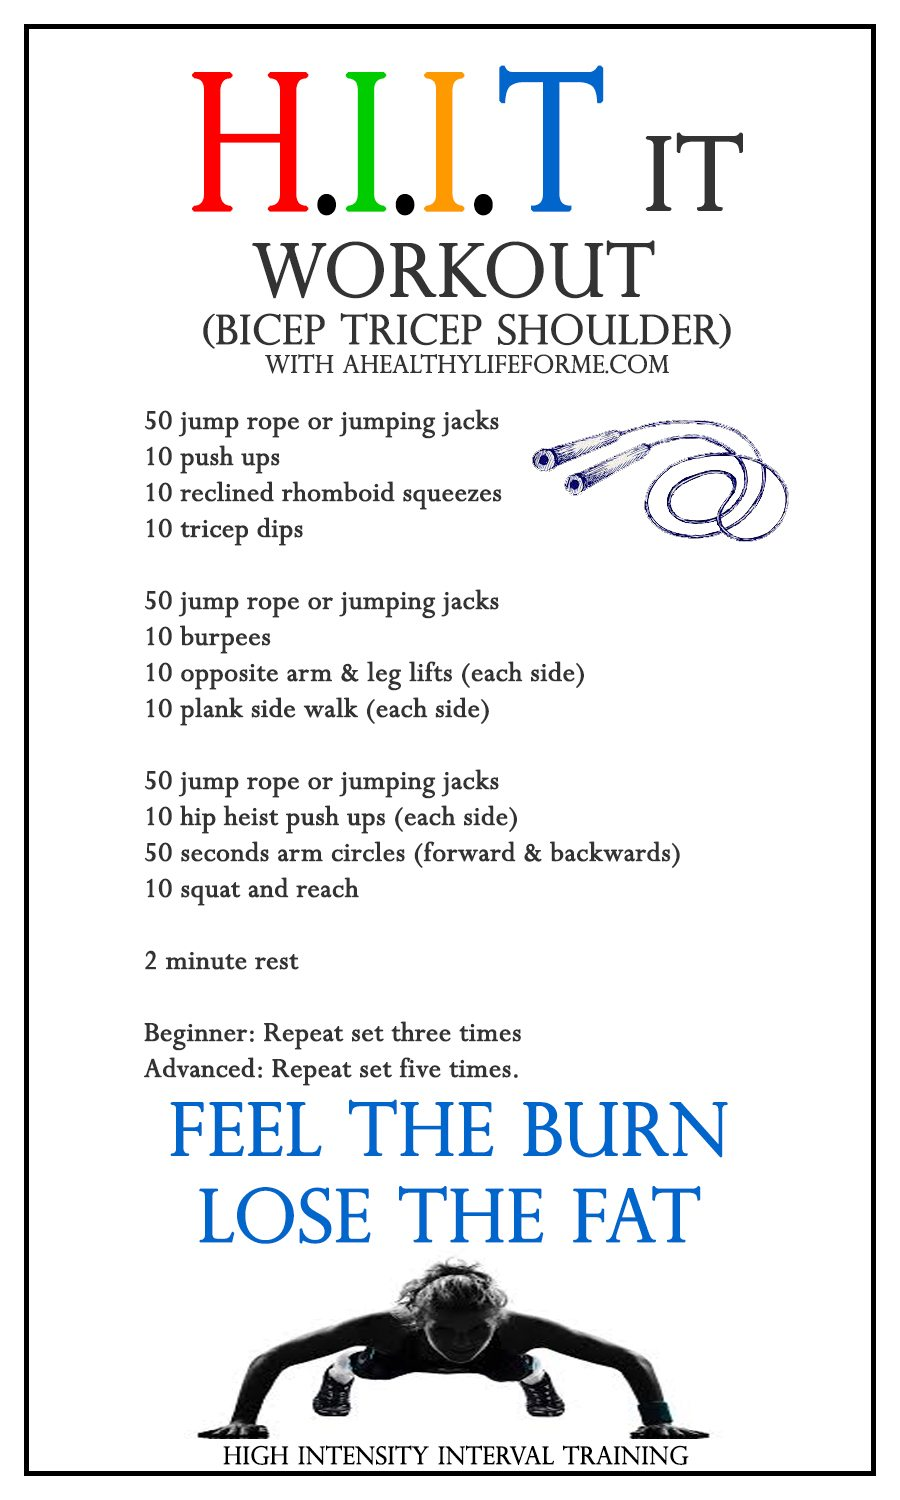 HIIT Workout Routine Bicep Tricep Shoulder